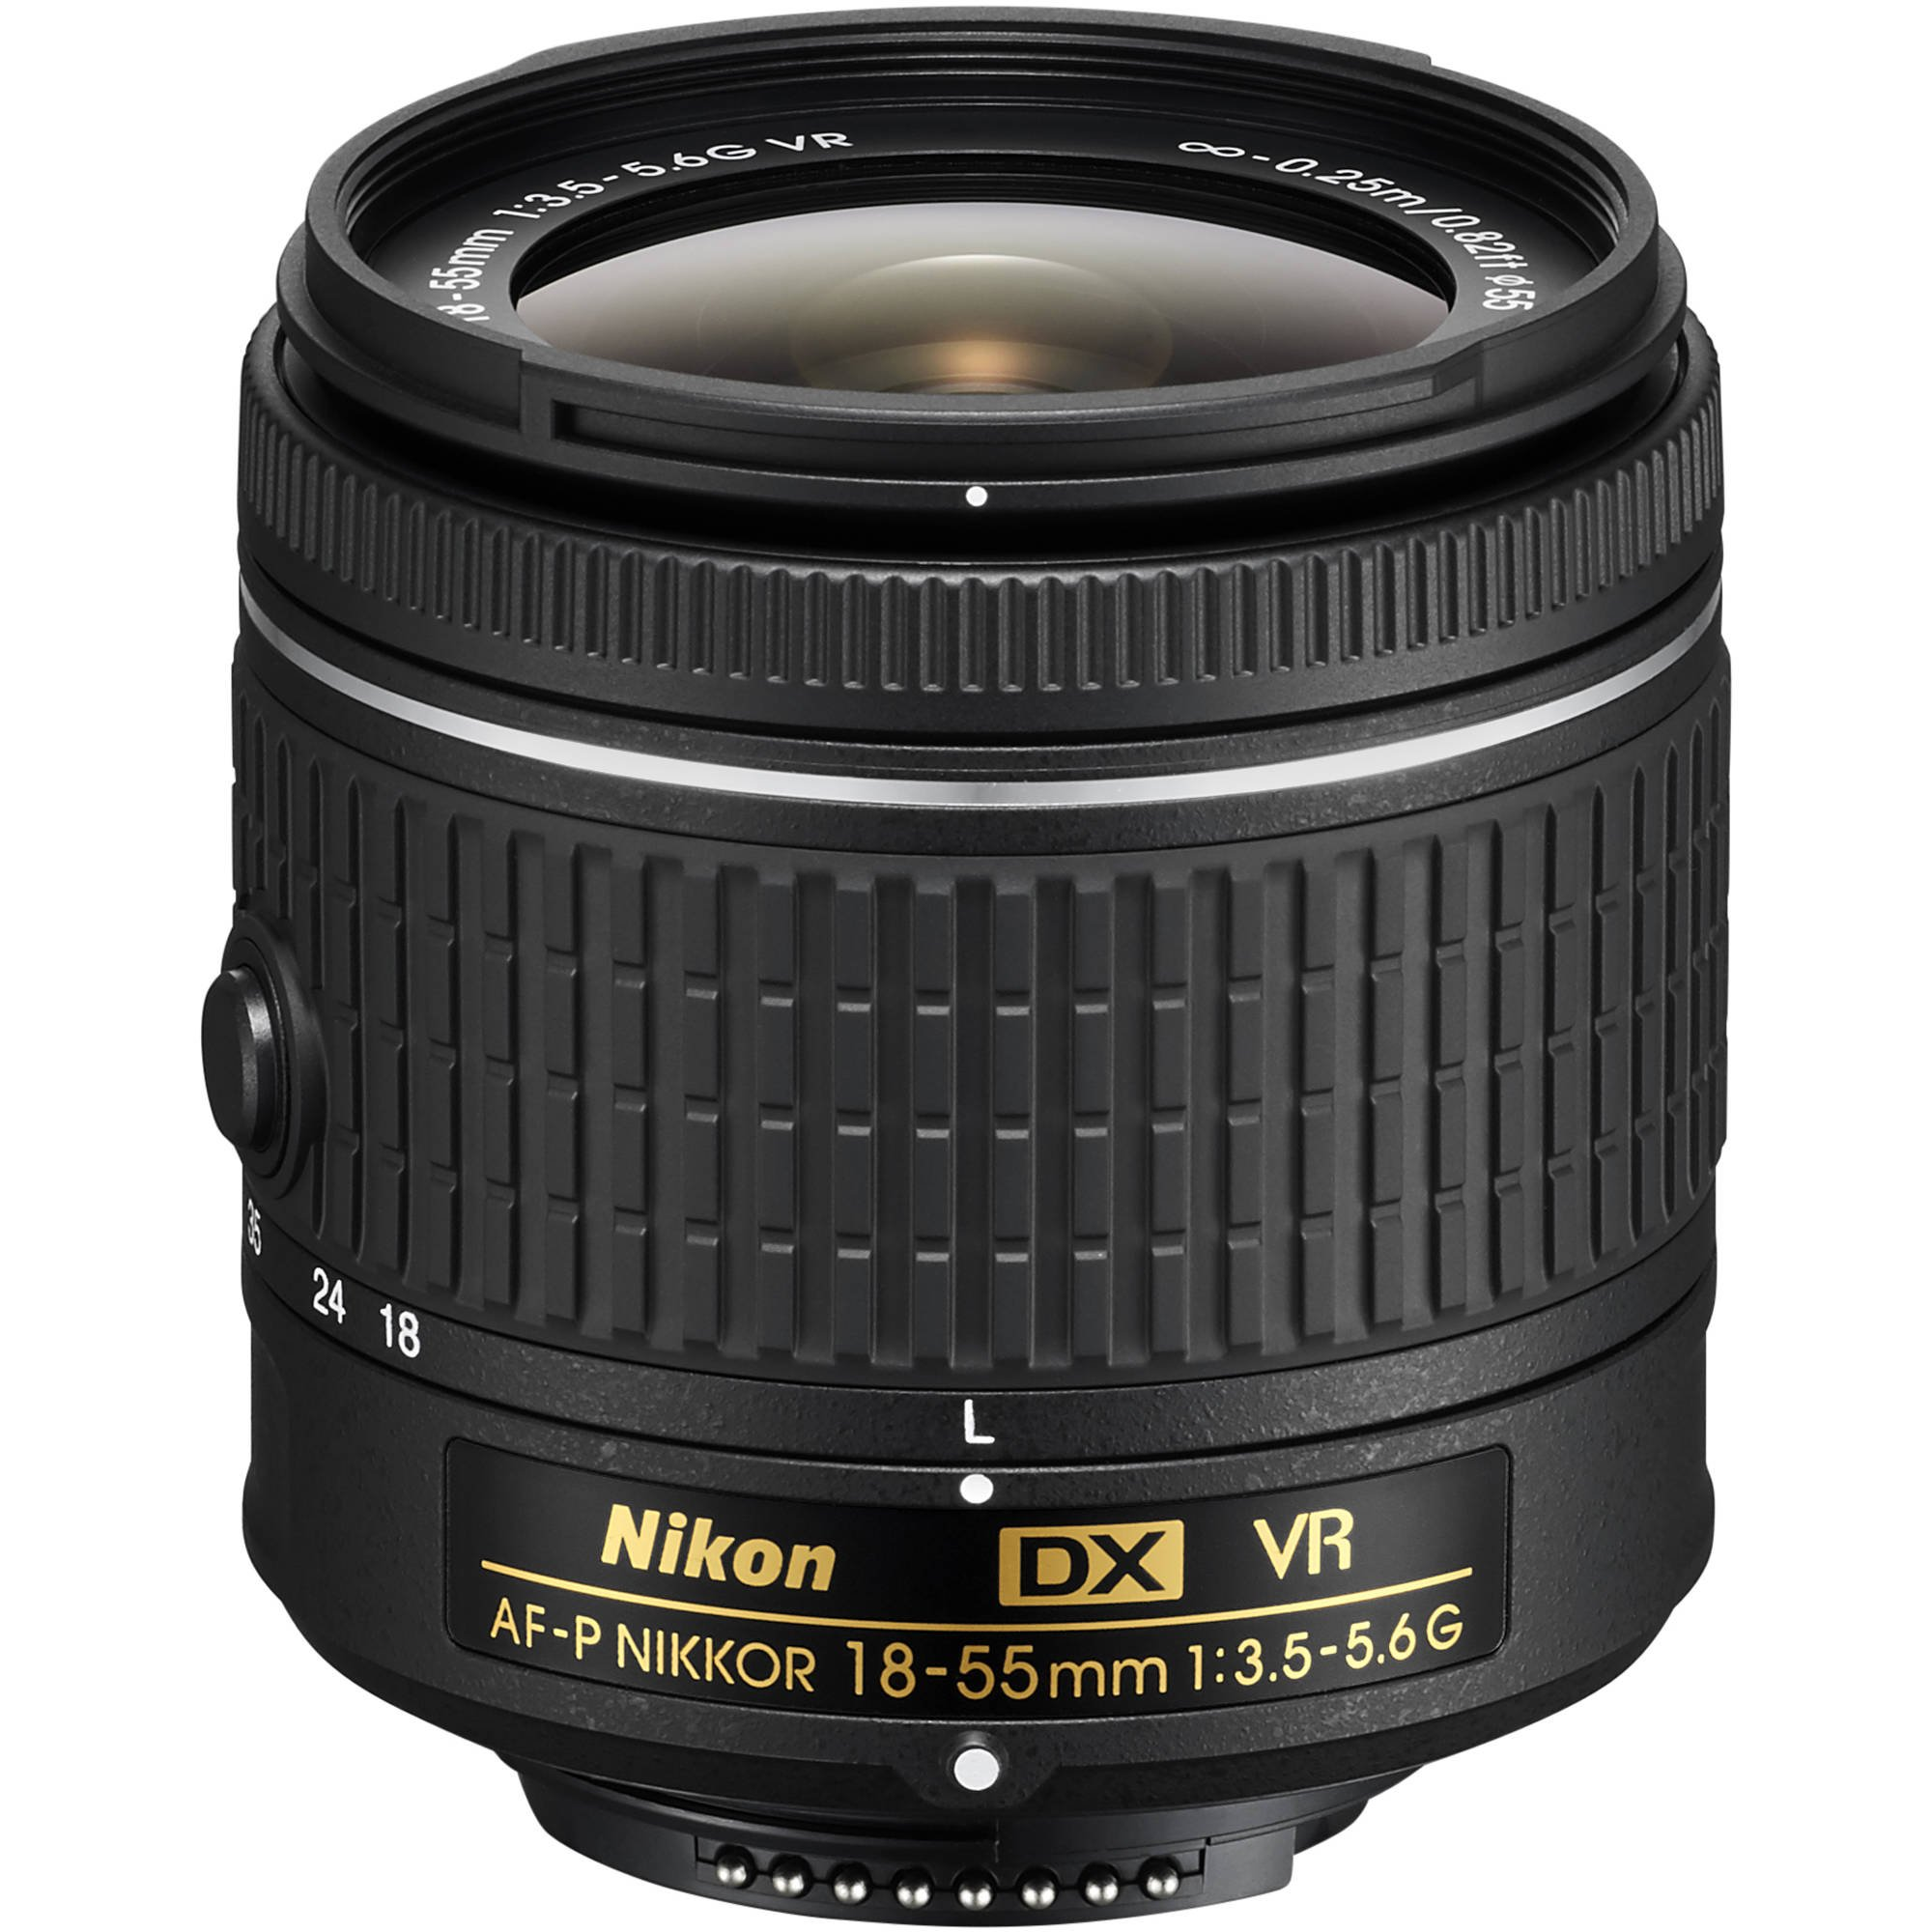 Nikon 18-55mm f/3.5-5.6G VR AF-P DX Zoom-Nikkor Lens - (Certified Refurbished) by Nikon